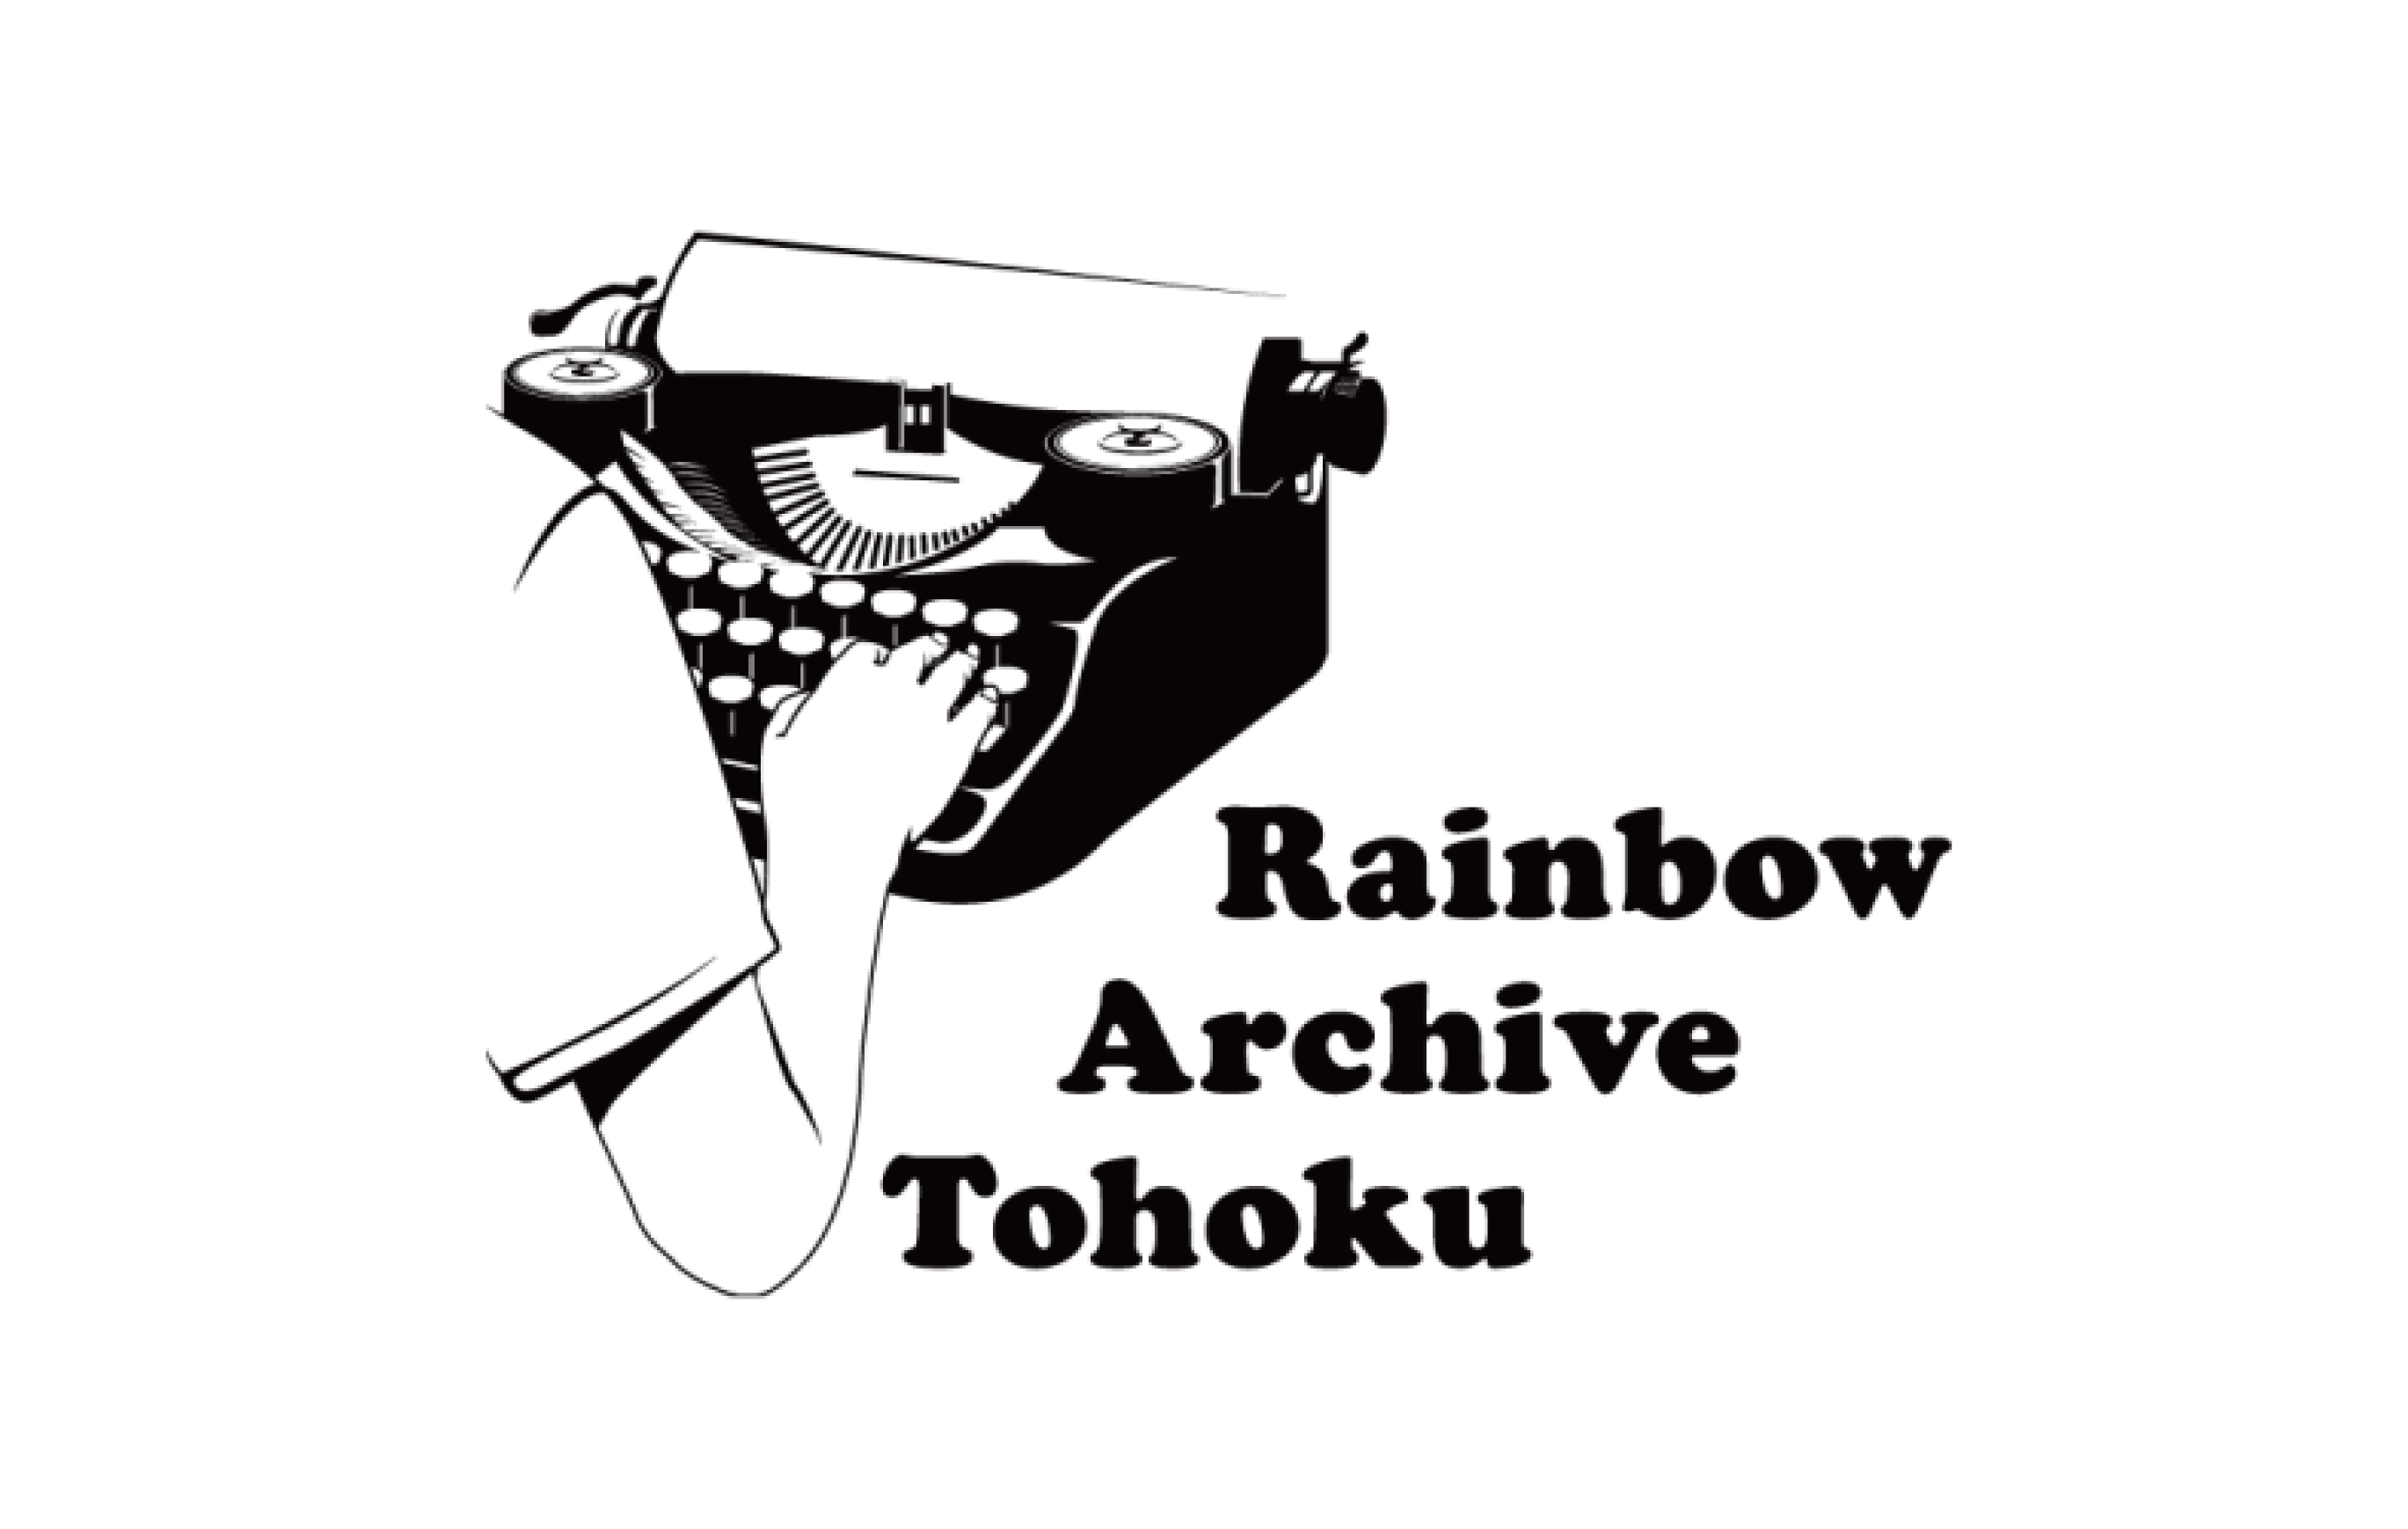 Series: Rainbow Archive Tohoku